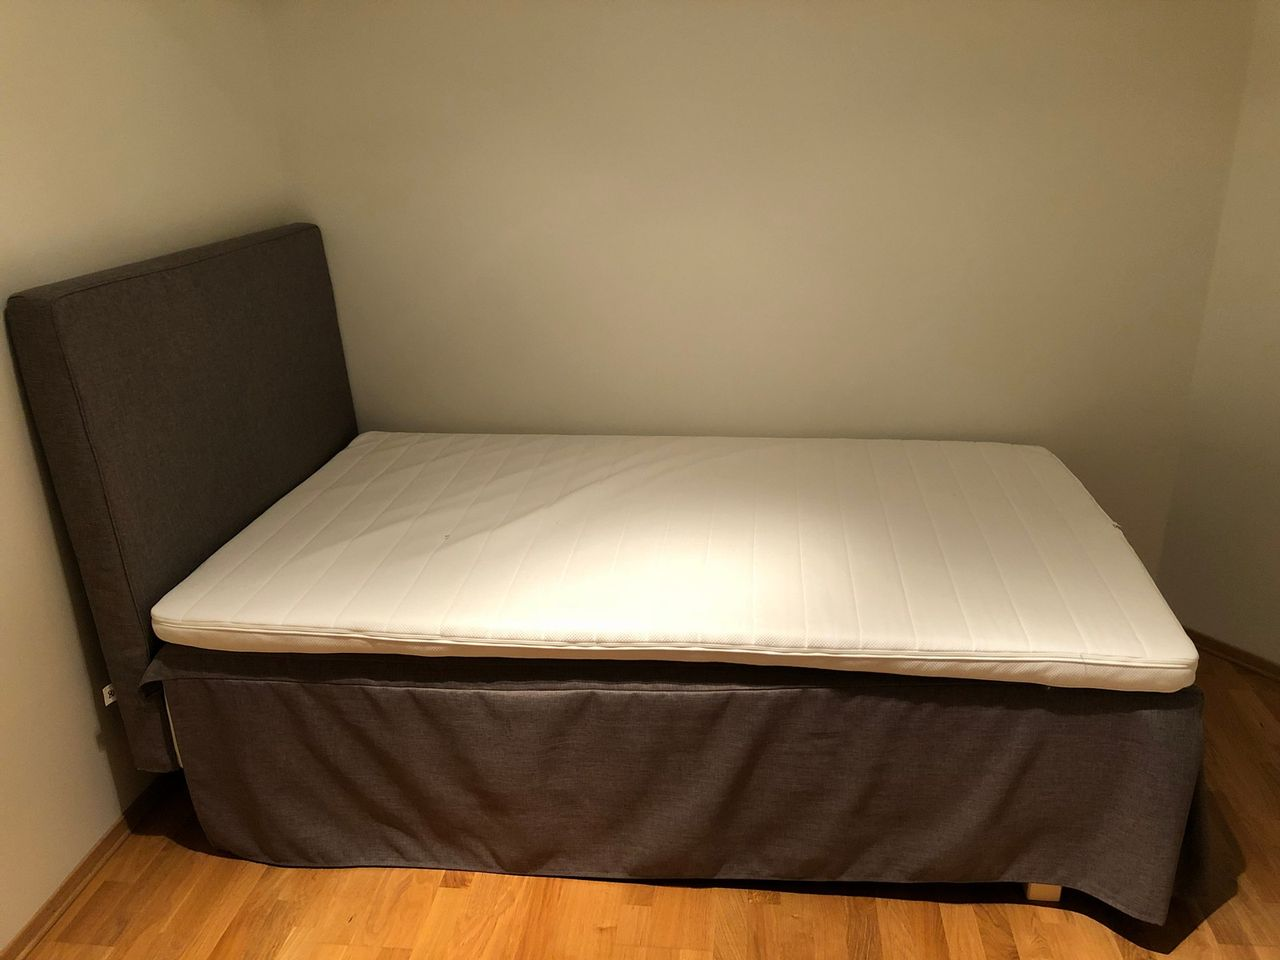 Ikea Boxspring 220 Cm Snggavel 120 Sng Beautiful Bed Breed Ikea Best Of Bed